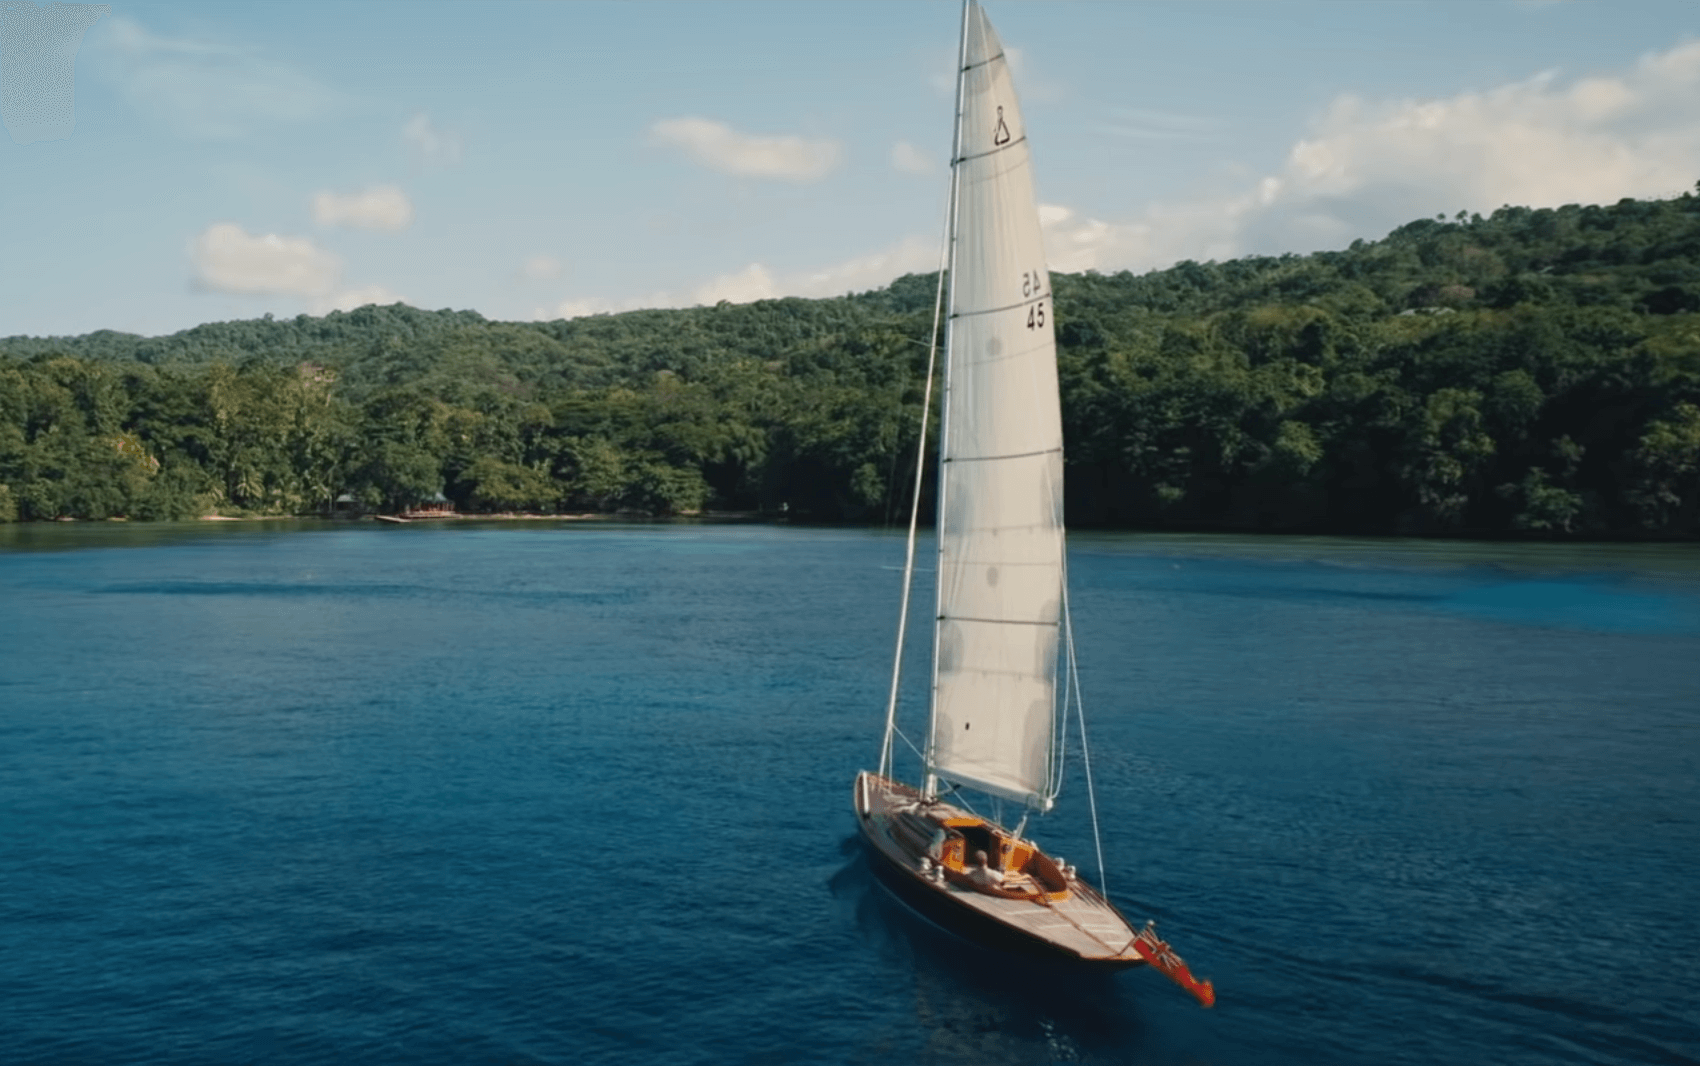 Sail boat in Jamaica on the ocean